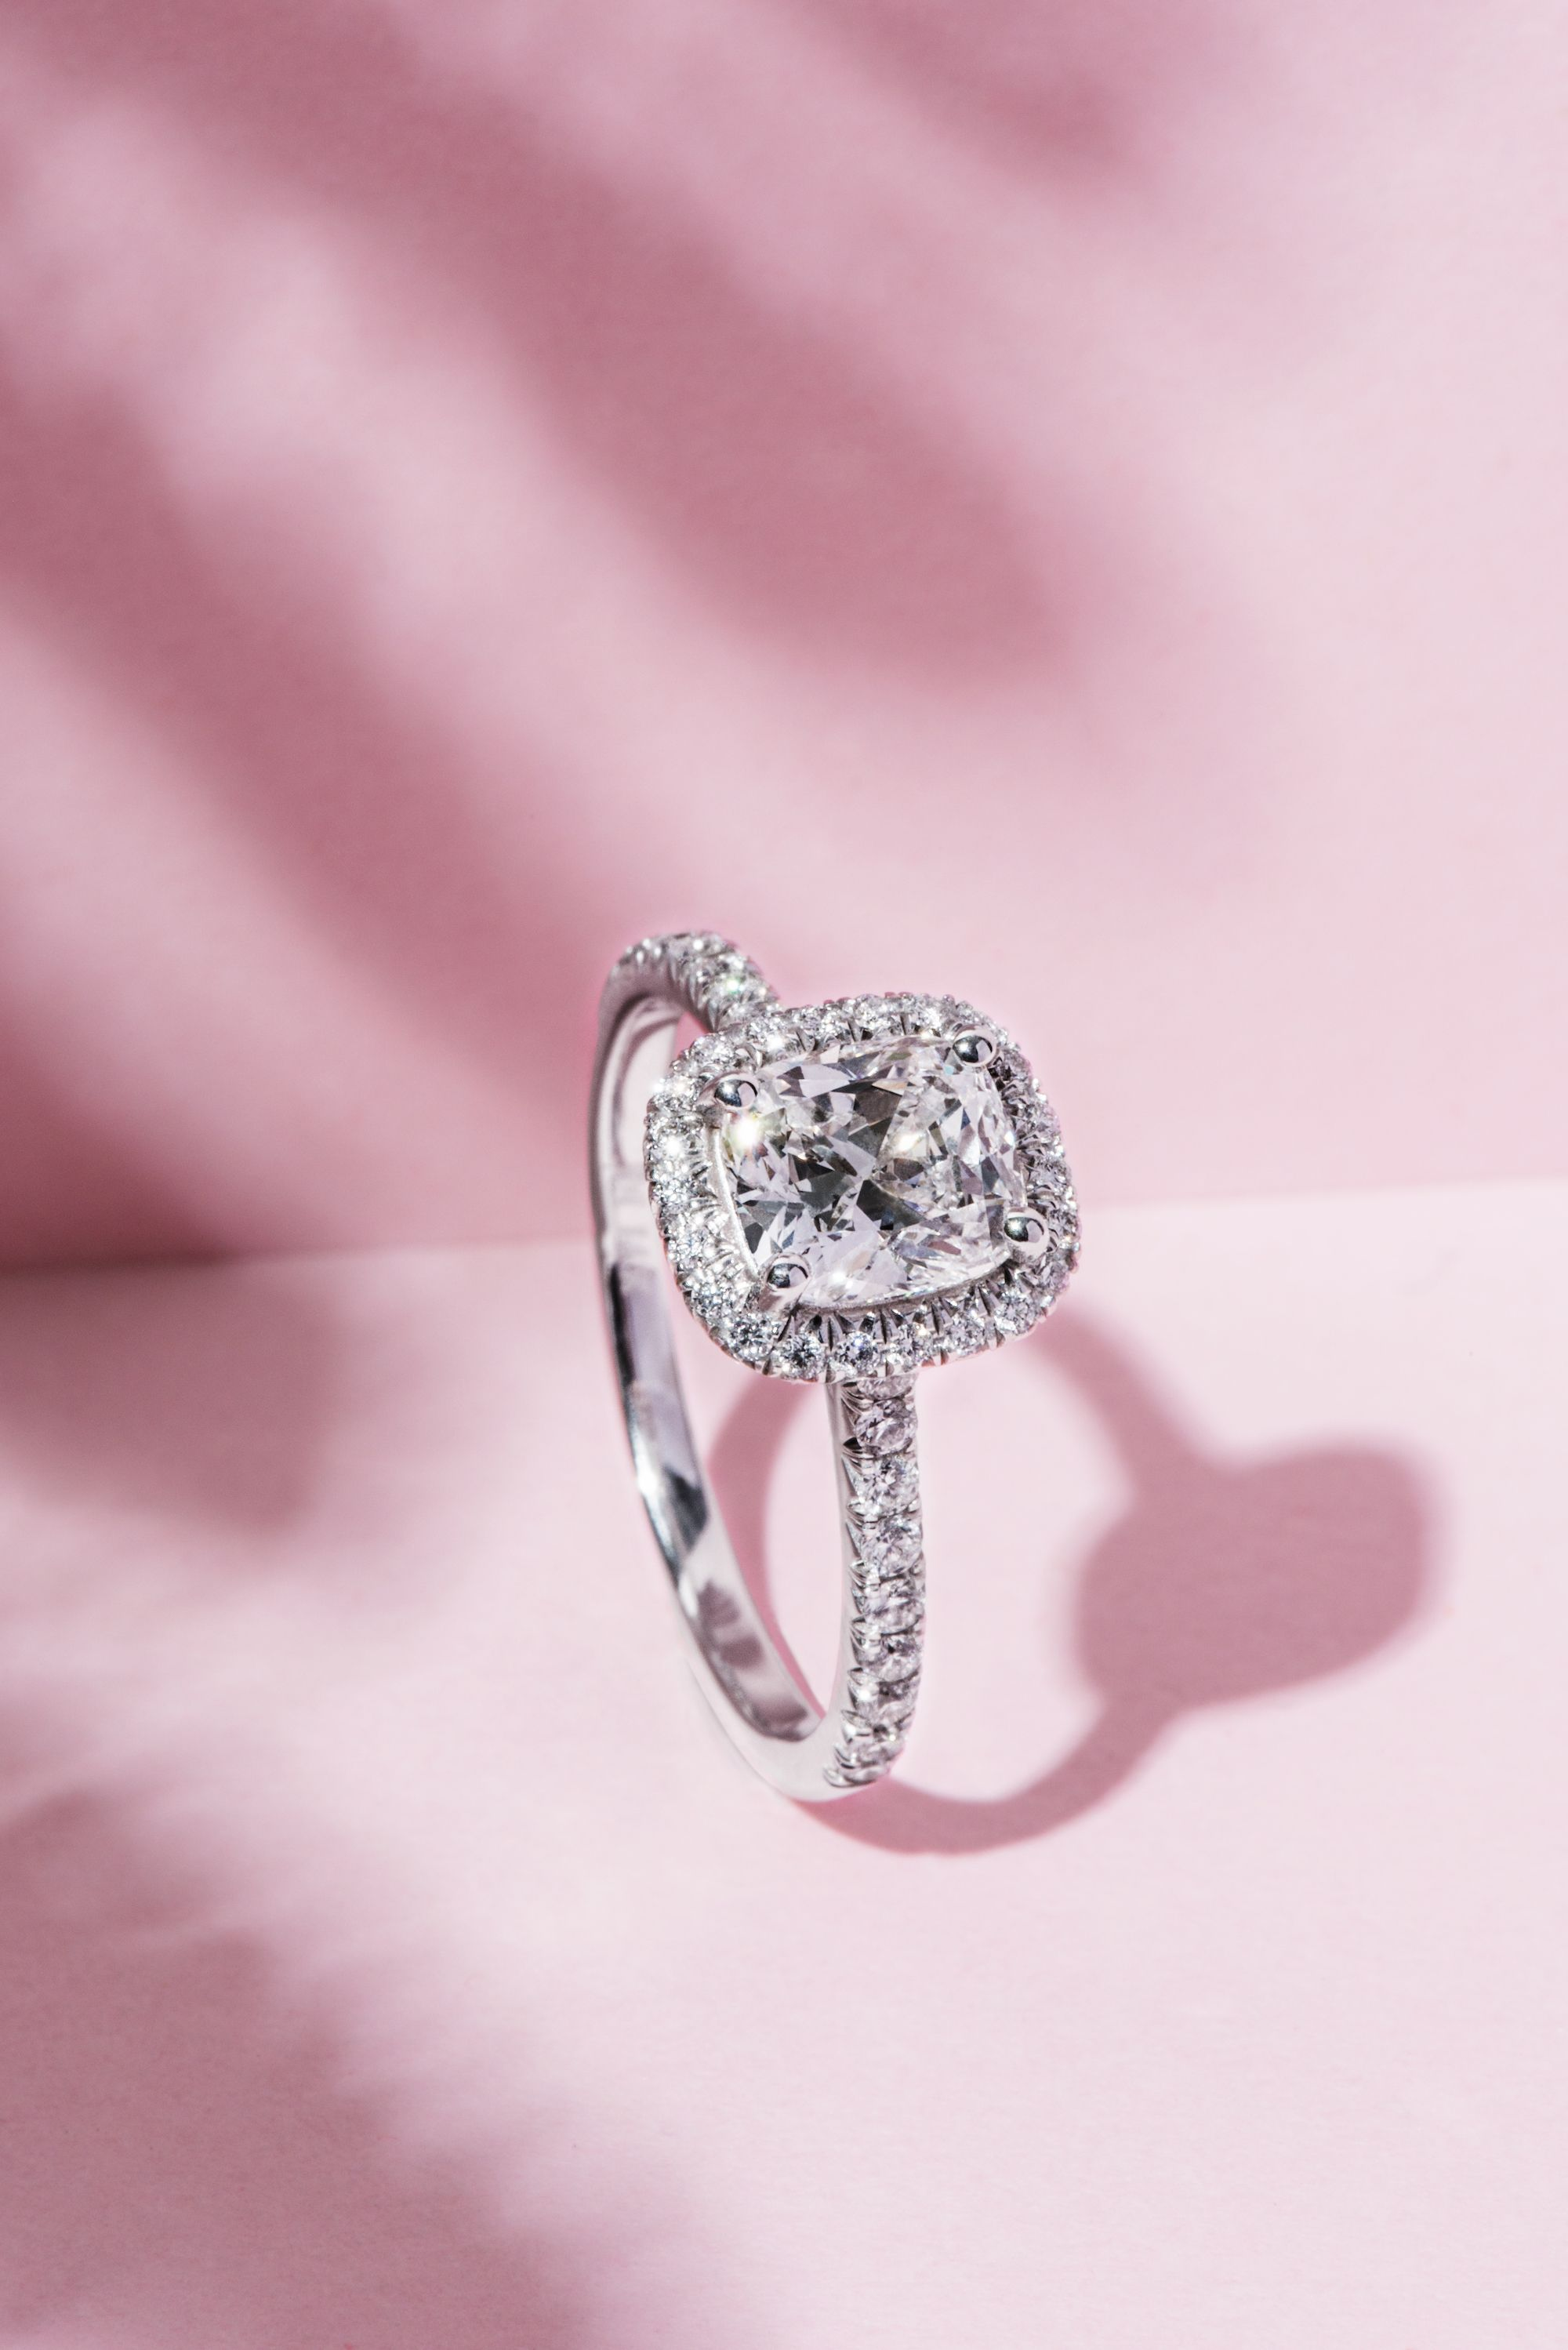 Diamond Buying Guide: Tips on Buying an Engagement Ring | future ...